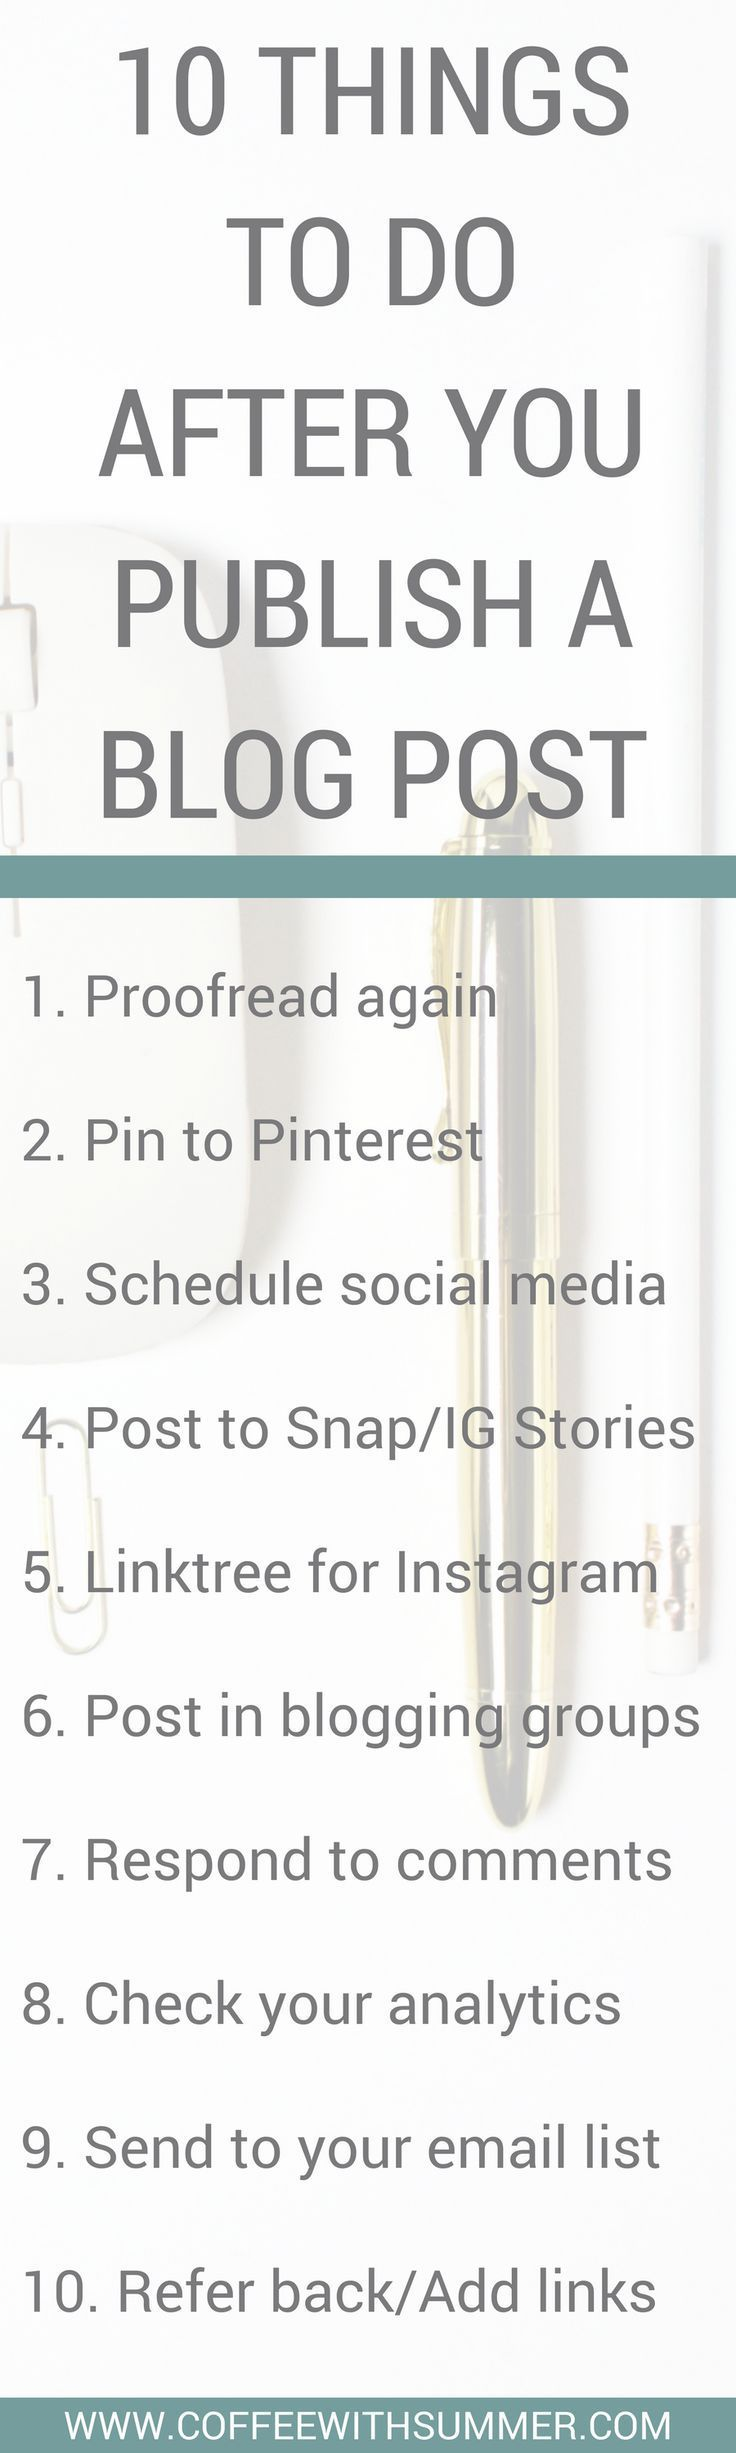 A checklist of what to do after you publish a NEW blog post!